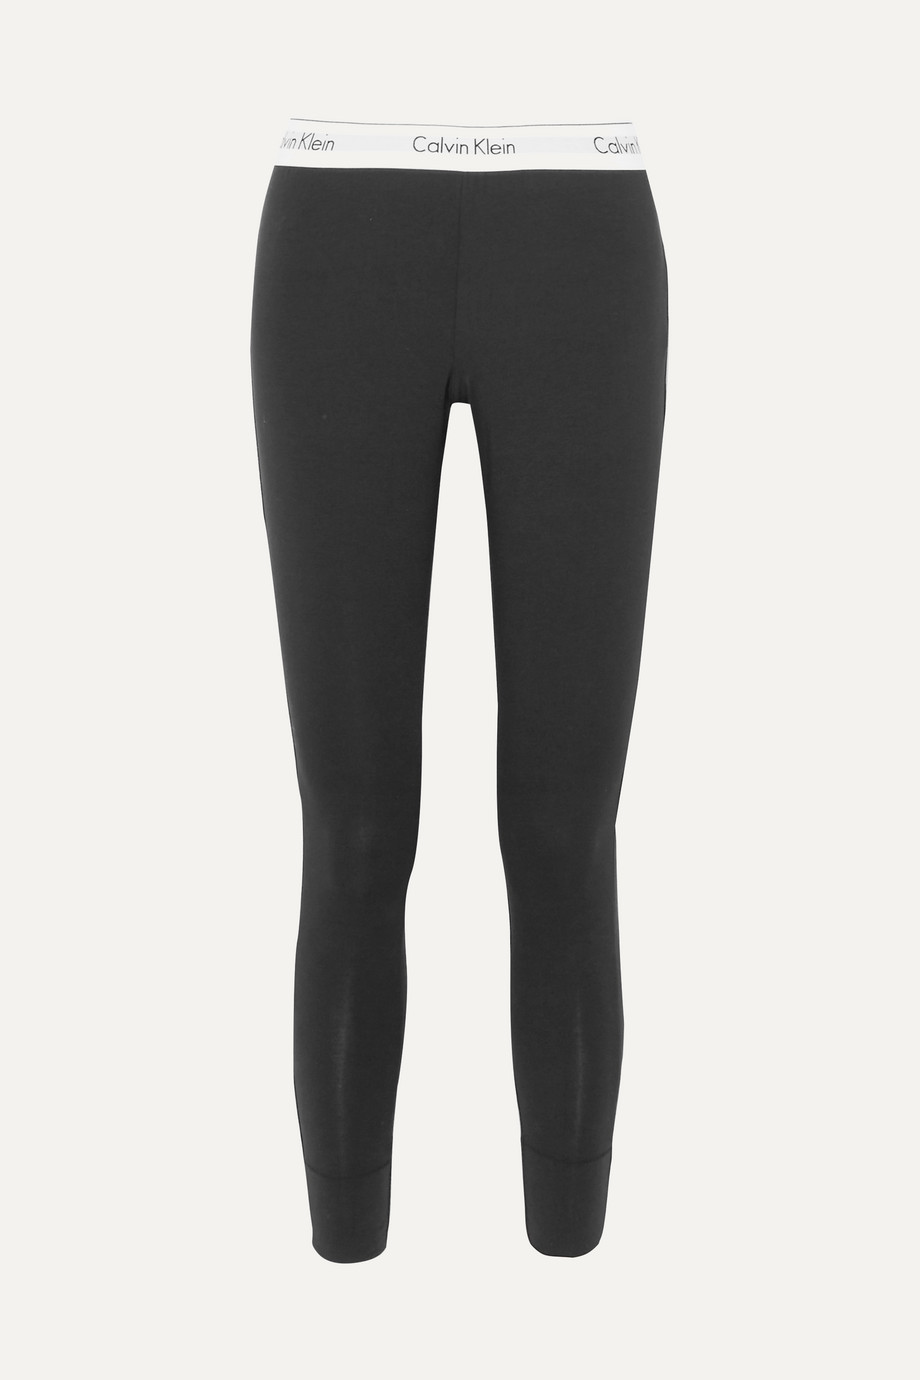 Calvin Klein Underwear Modern stretch cotton-blend leggings